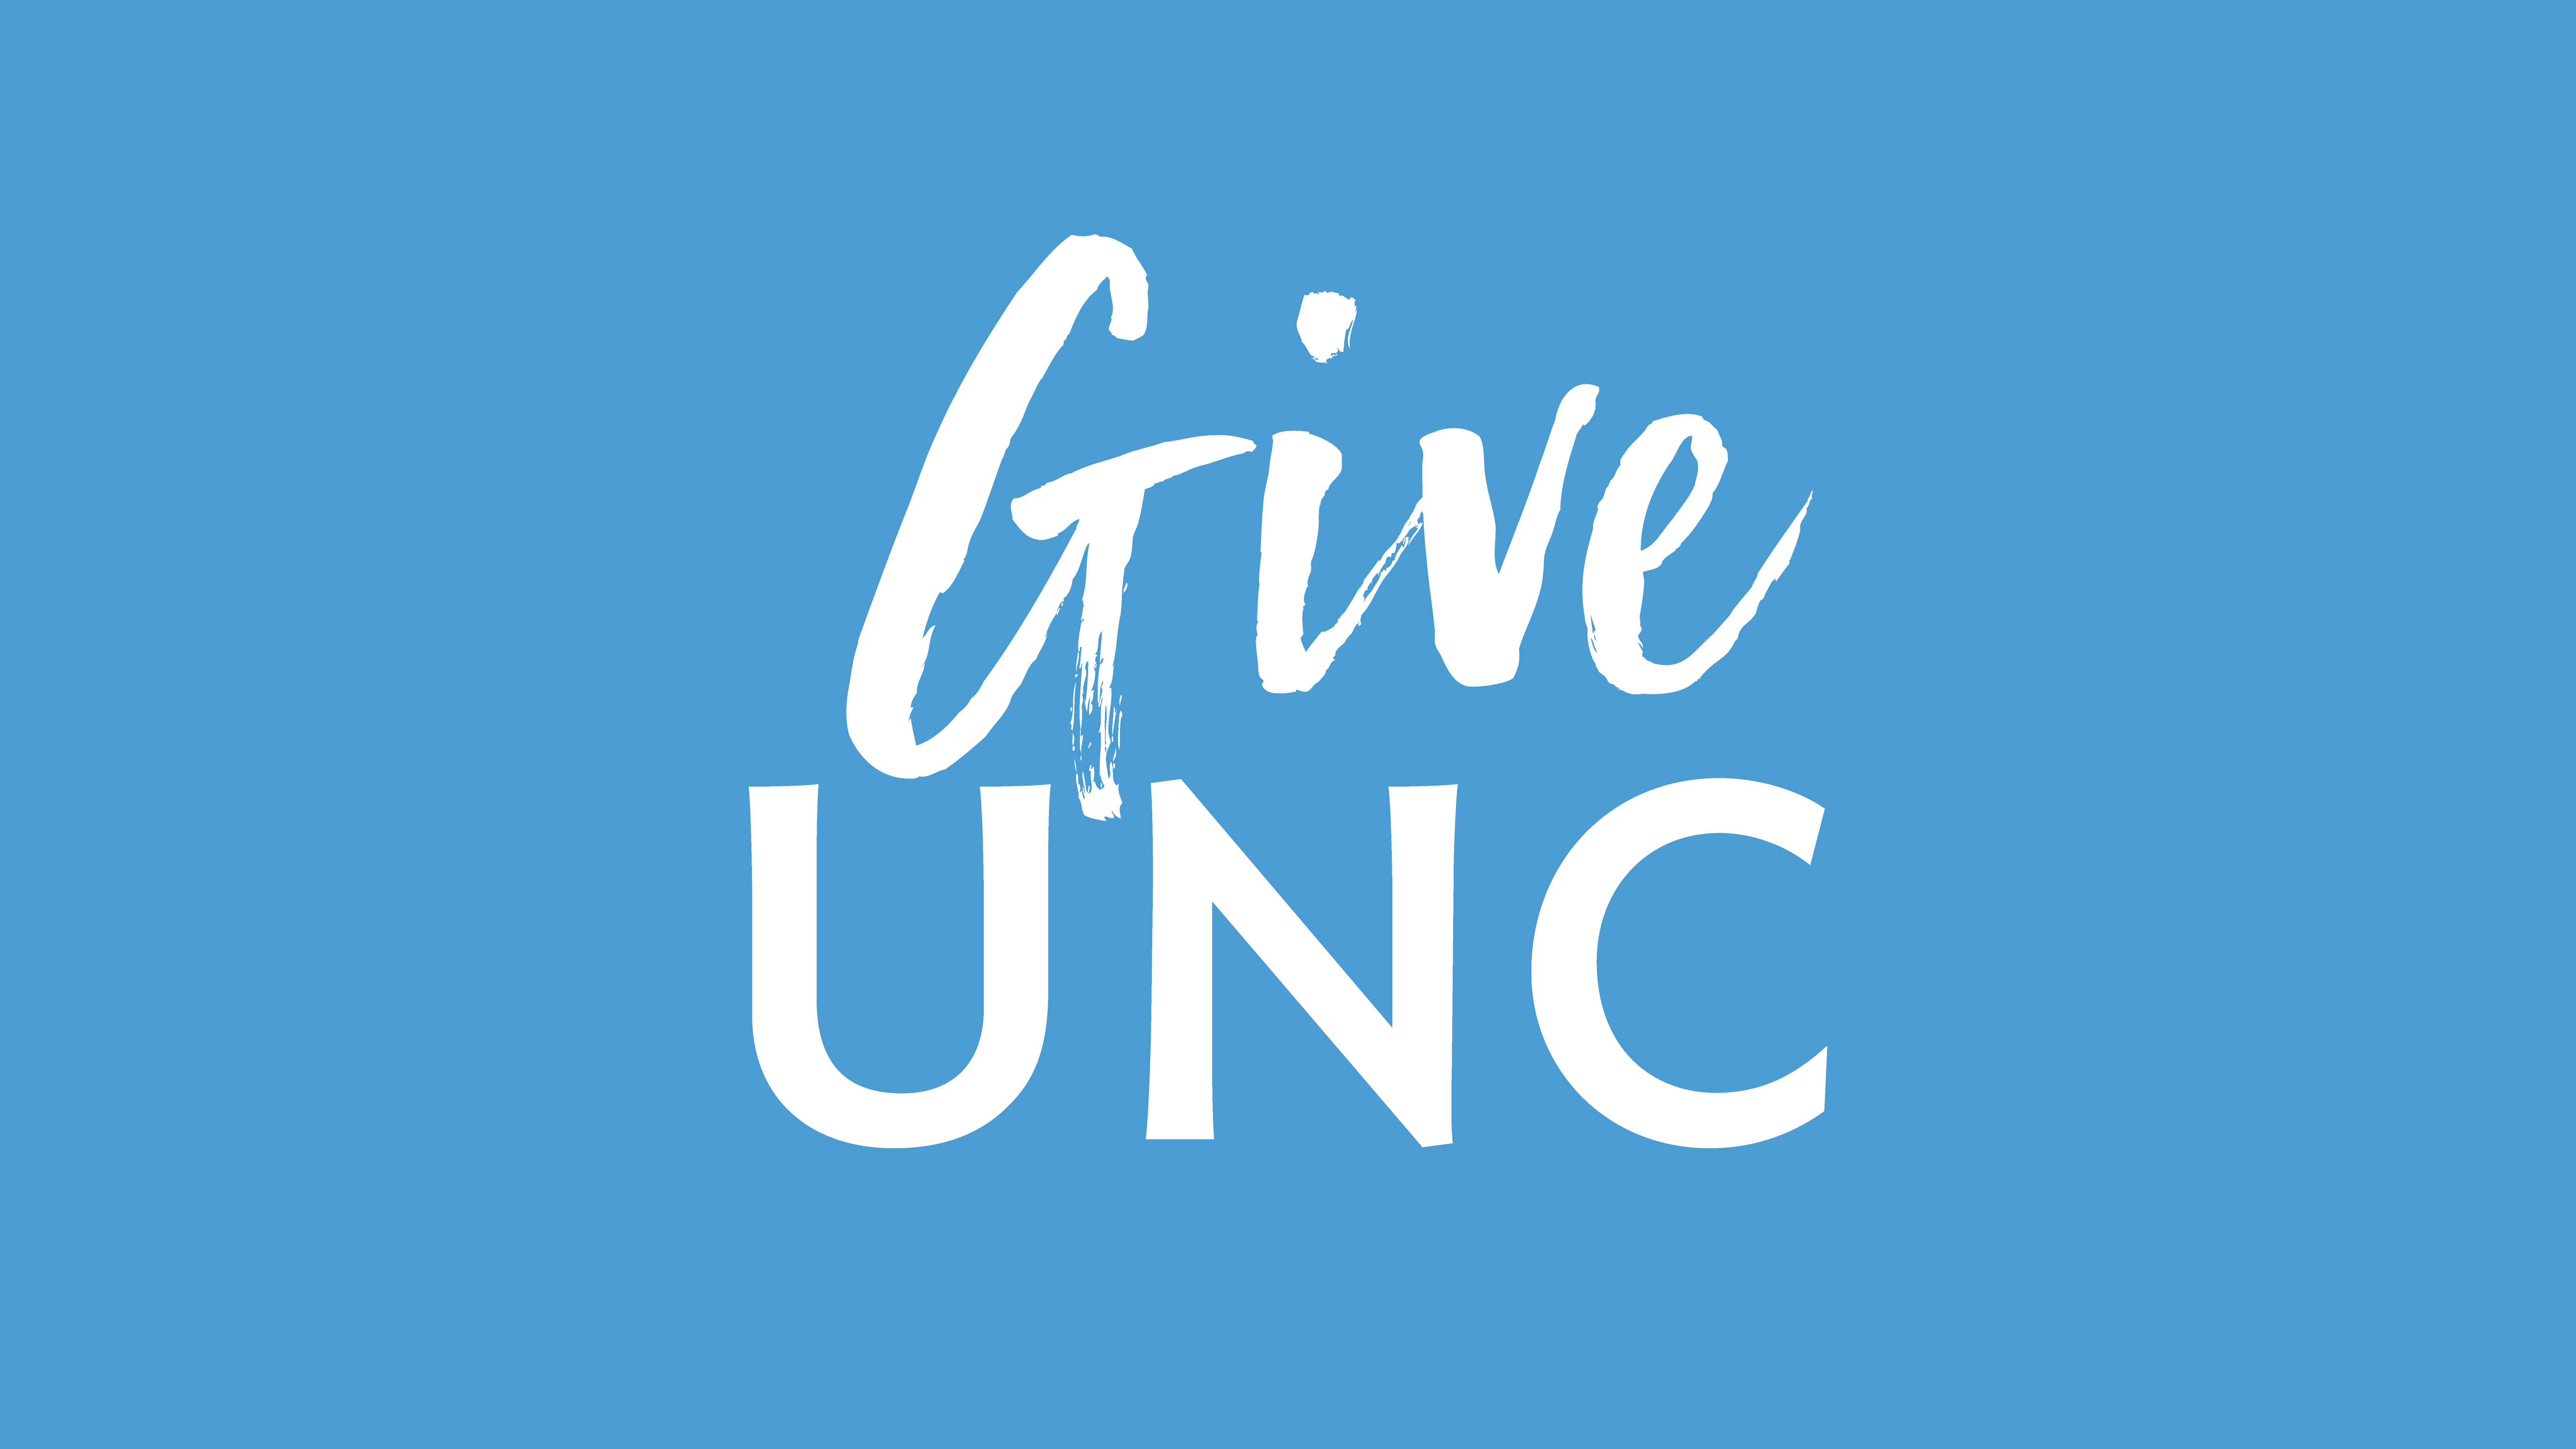 You made GiveUNC a day like no other for the University Libraries